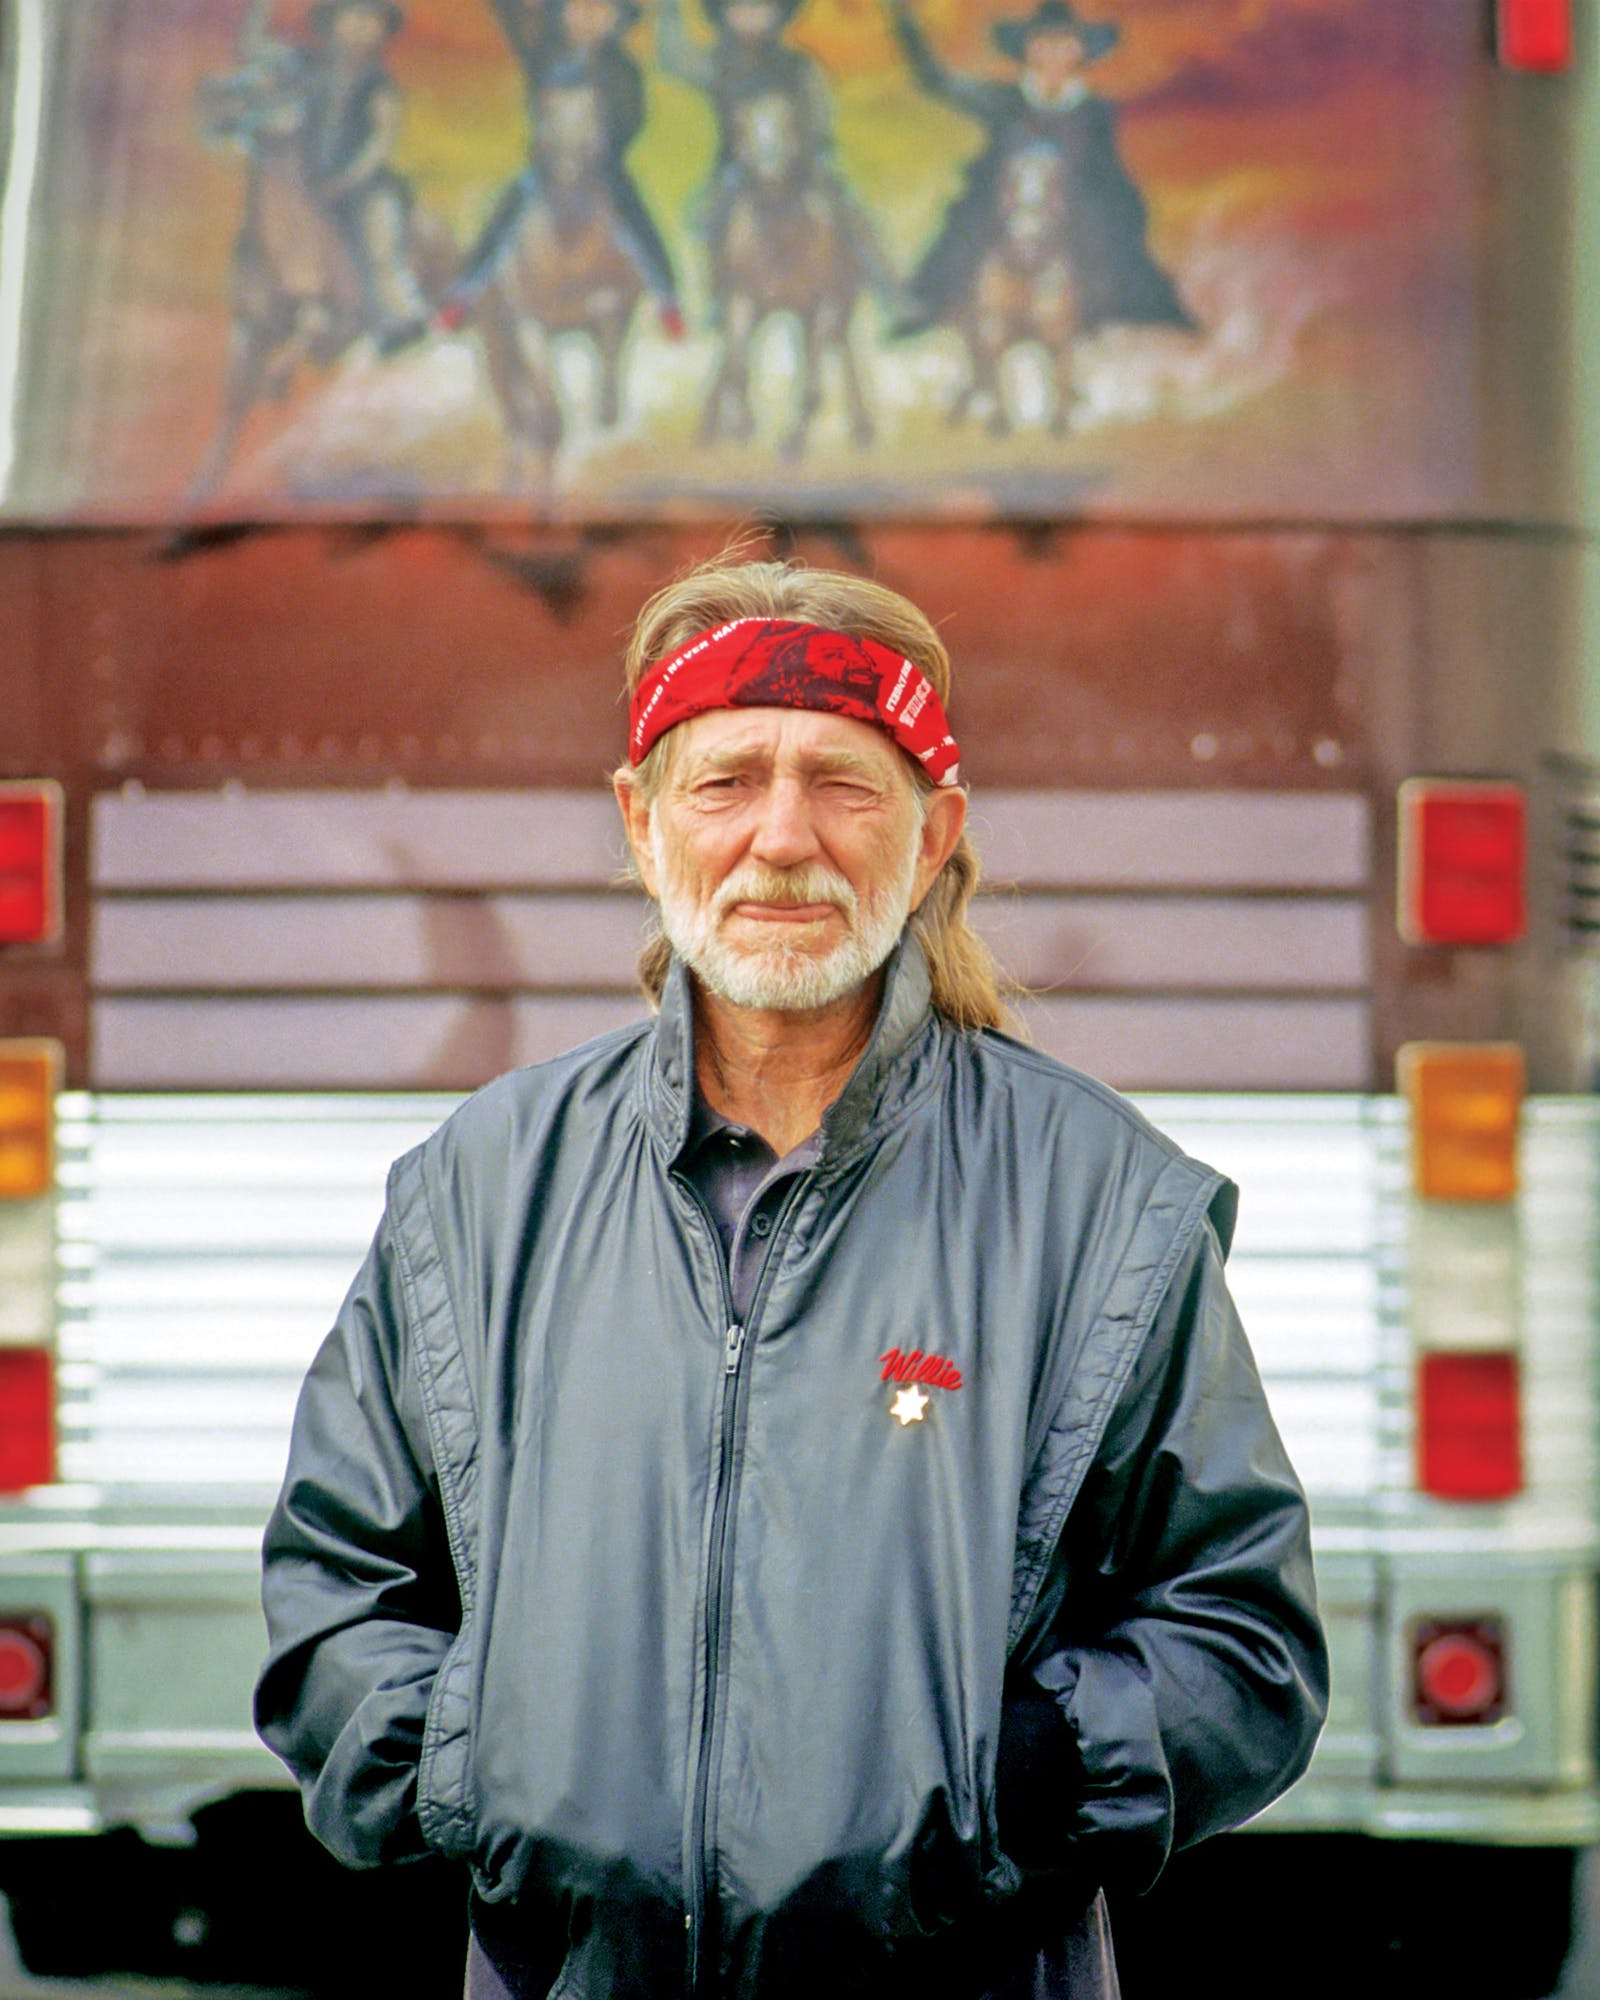 Willie standing by his bus, the Honeysuckle Rose, outside the Mirage Casino in Las Vegas, Nevada, circa 1990.